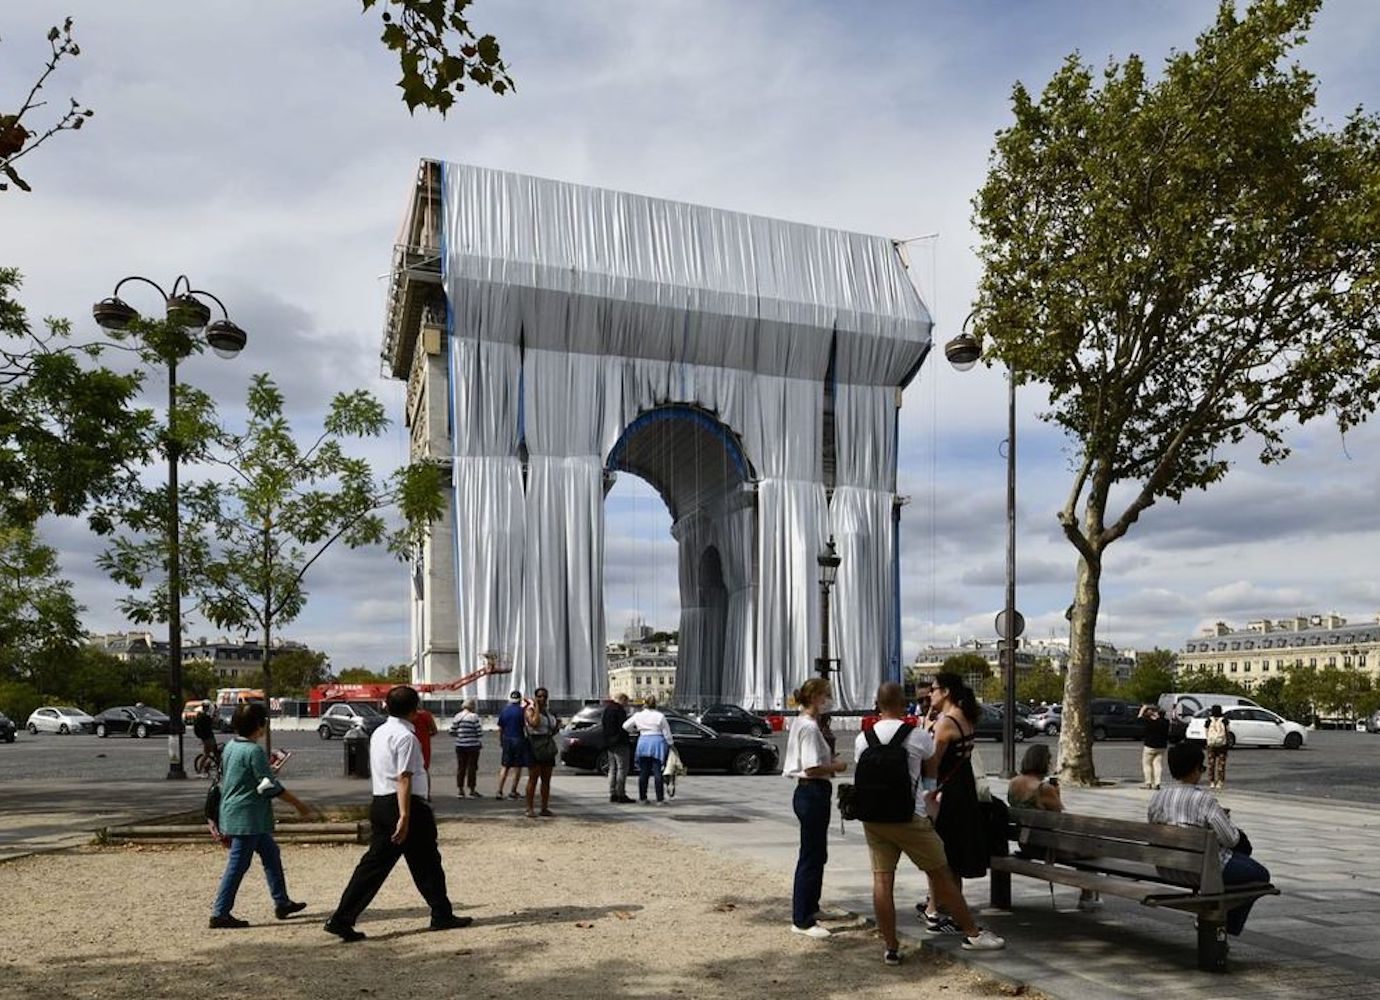 It's a wrap: Paris' Arc de Triomphe is covered in fabric as Christo's final artwork is unveiled